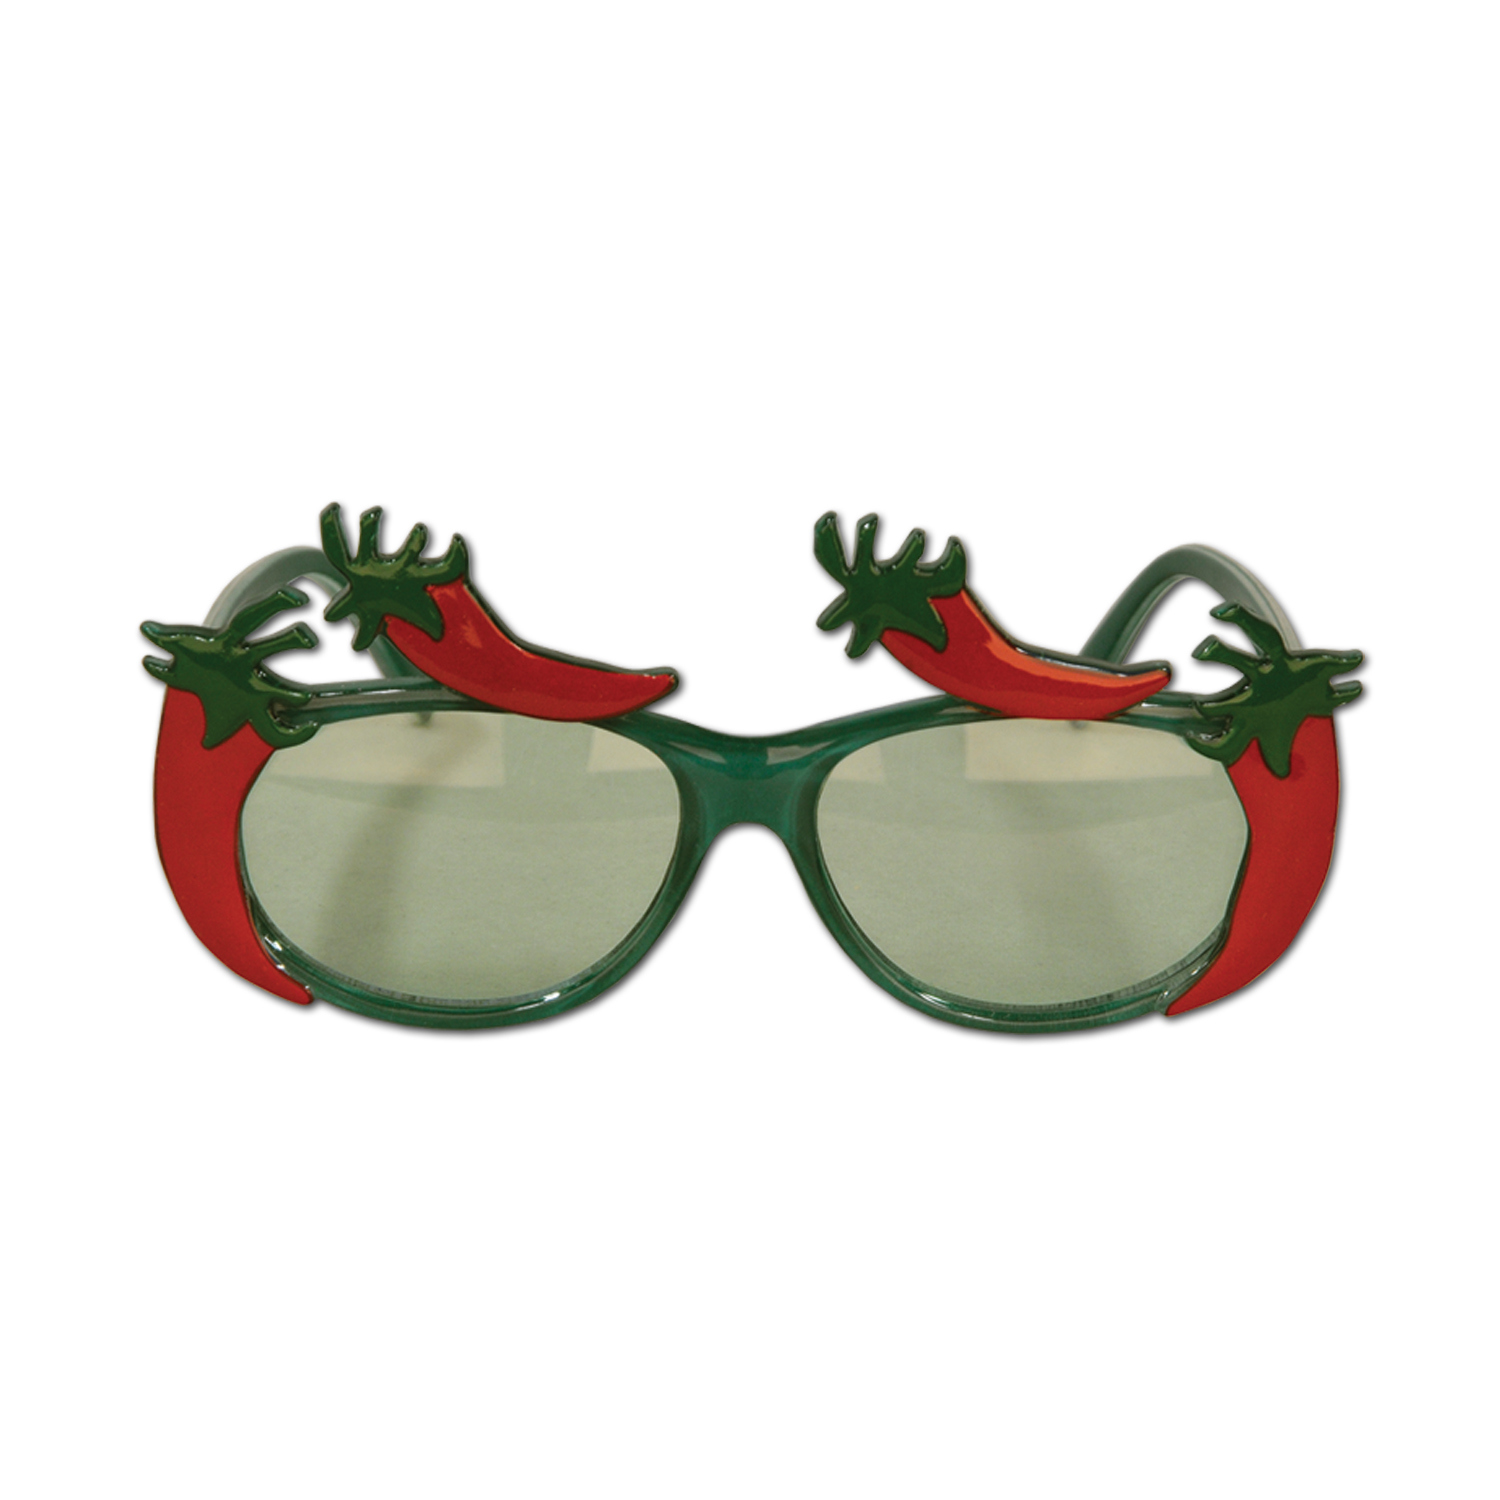 Chili Pepper Fanci-Frames (Pack of 6) Chili Pepper Fanci-Frames, decoration, party favor, fiesta, cinco de mayo, wholesale, inexpensive, bulk